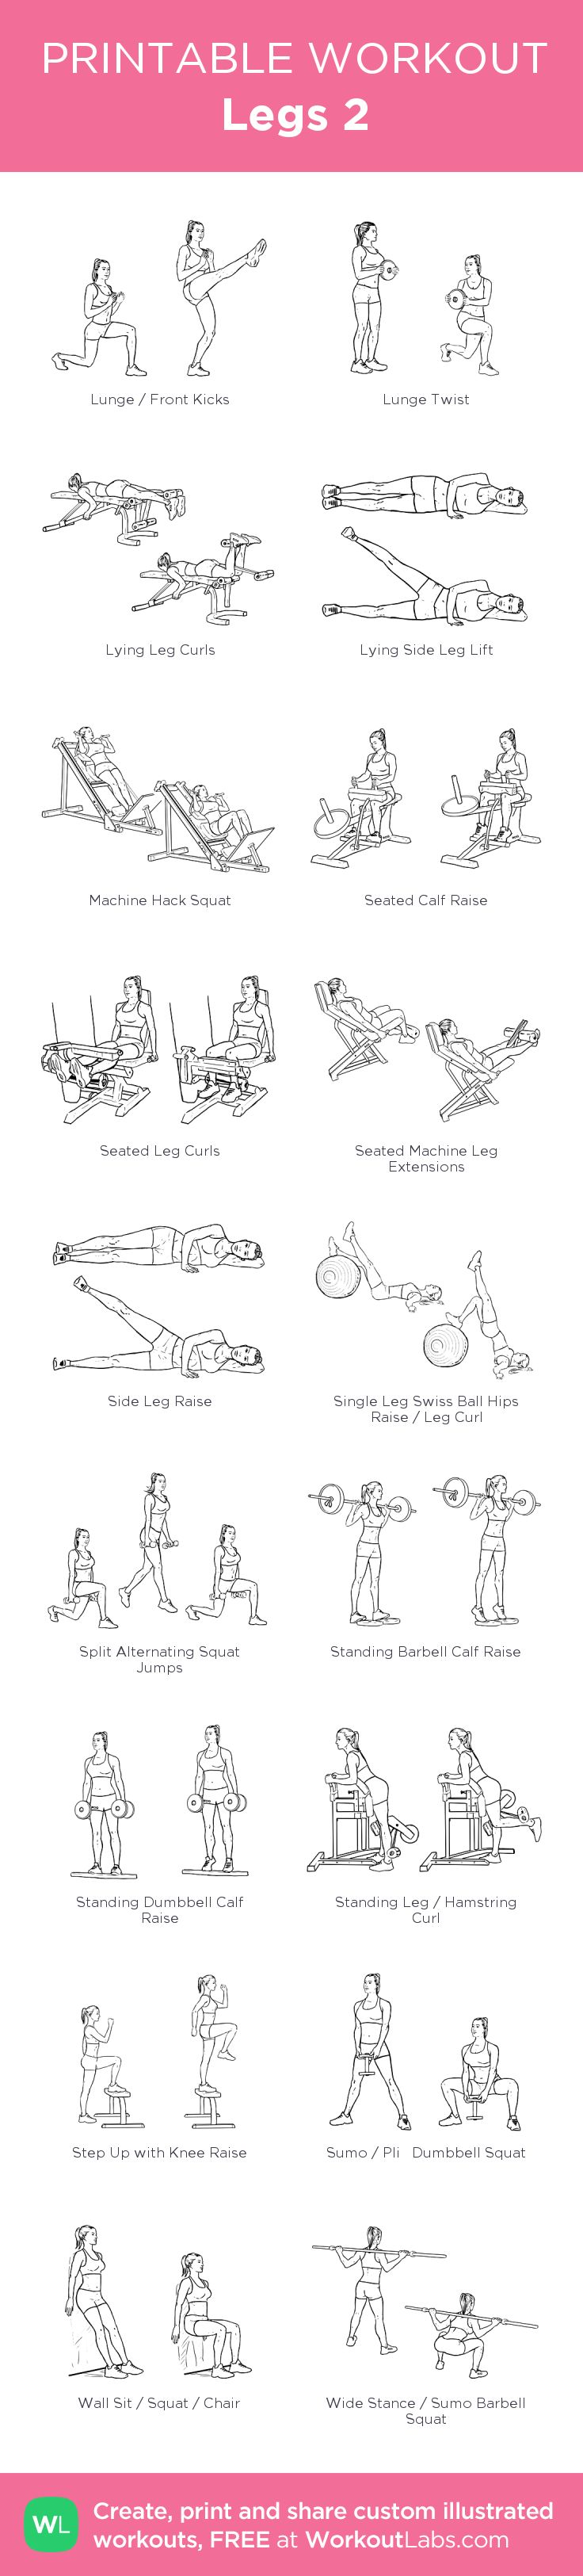 Legs 2: my visual workout created at WorkoutLabs.com • Click through to customize and download as a FREE PDF! #customworkout